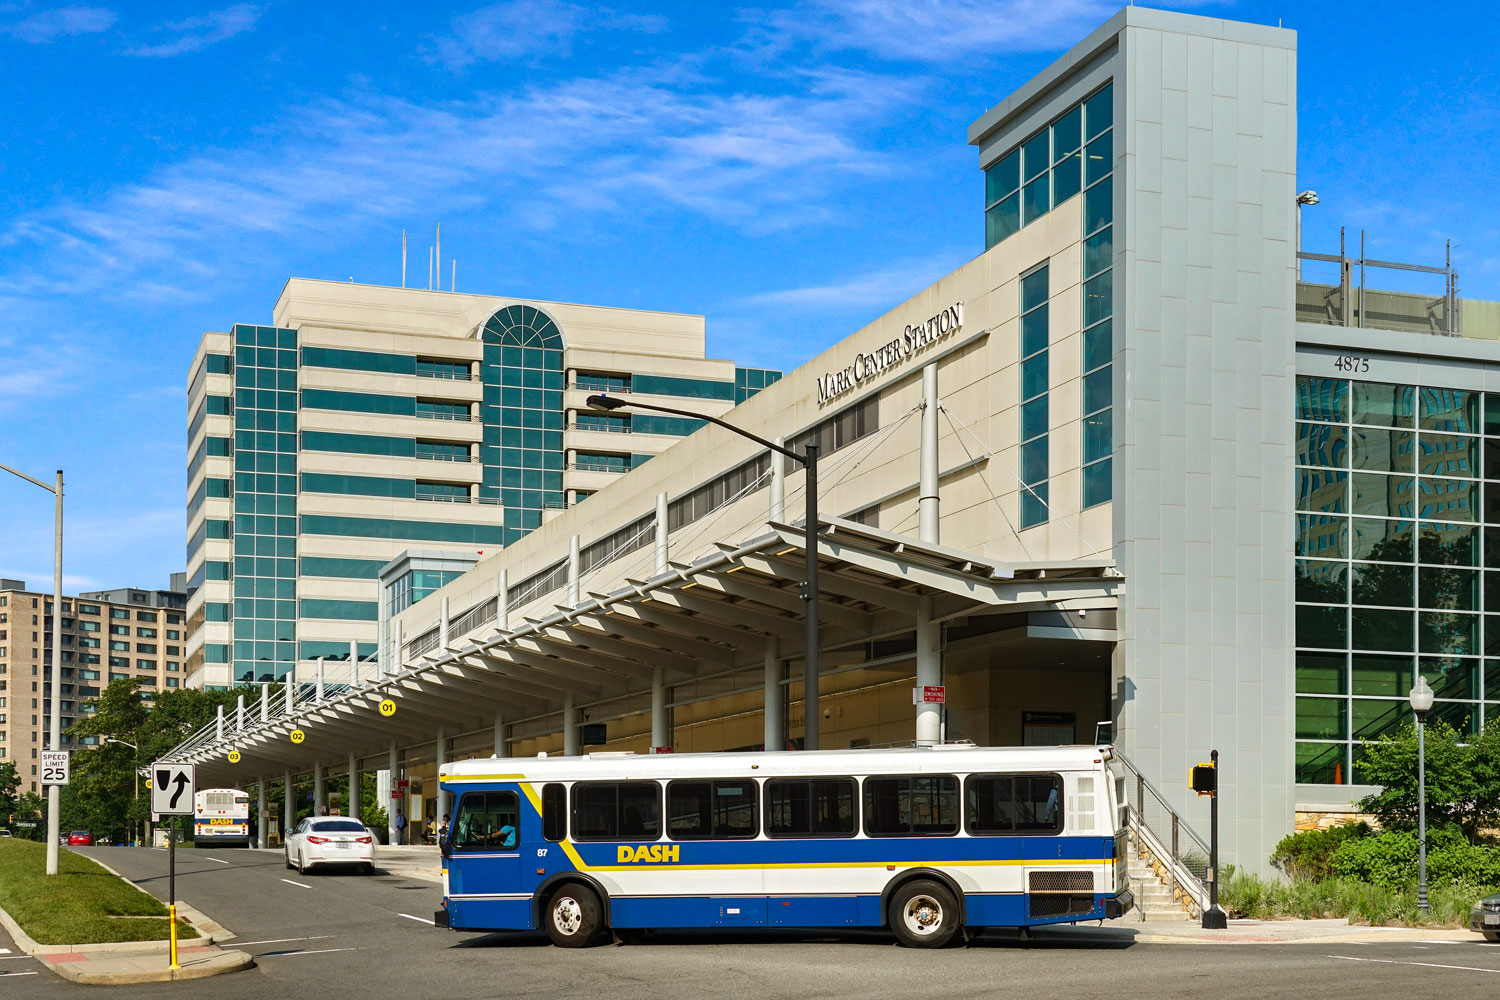 Mark Center Transit station is 10 minutes from London Park Towers Apartments